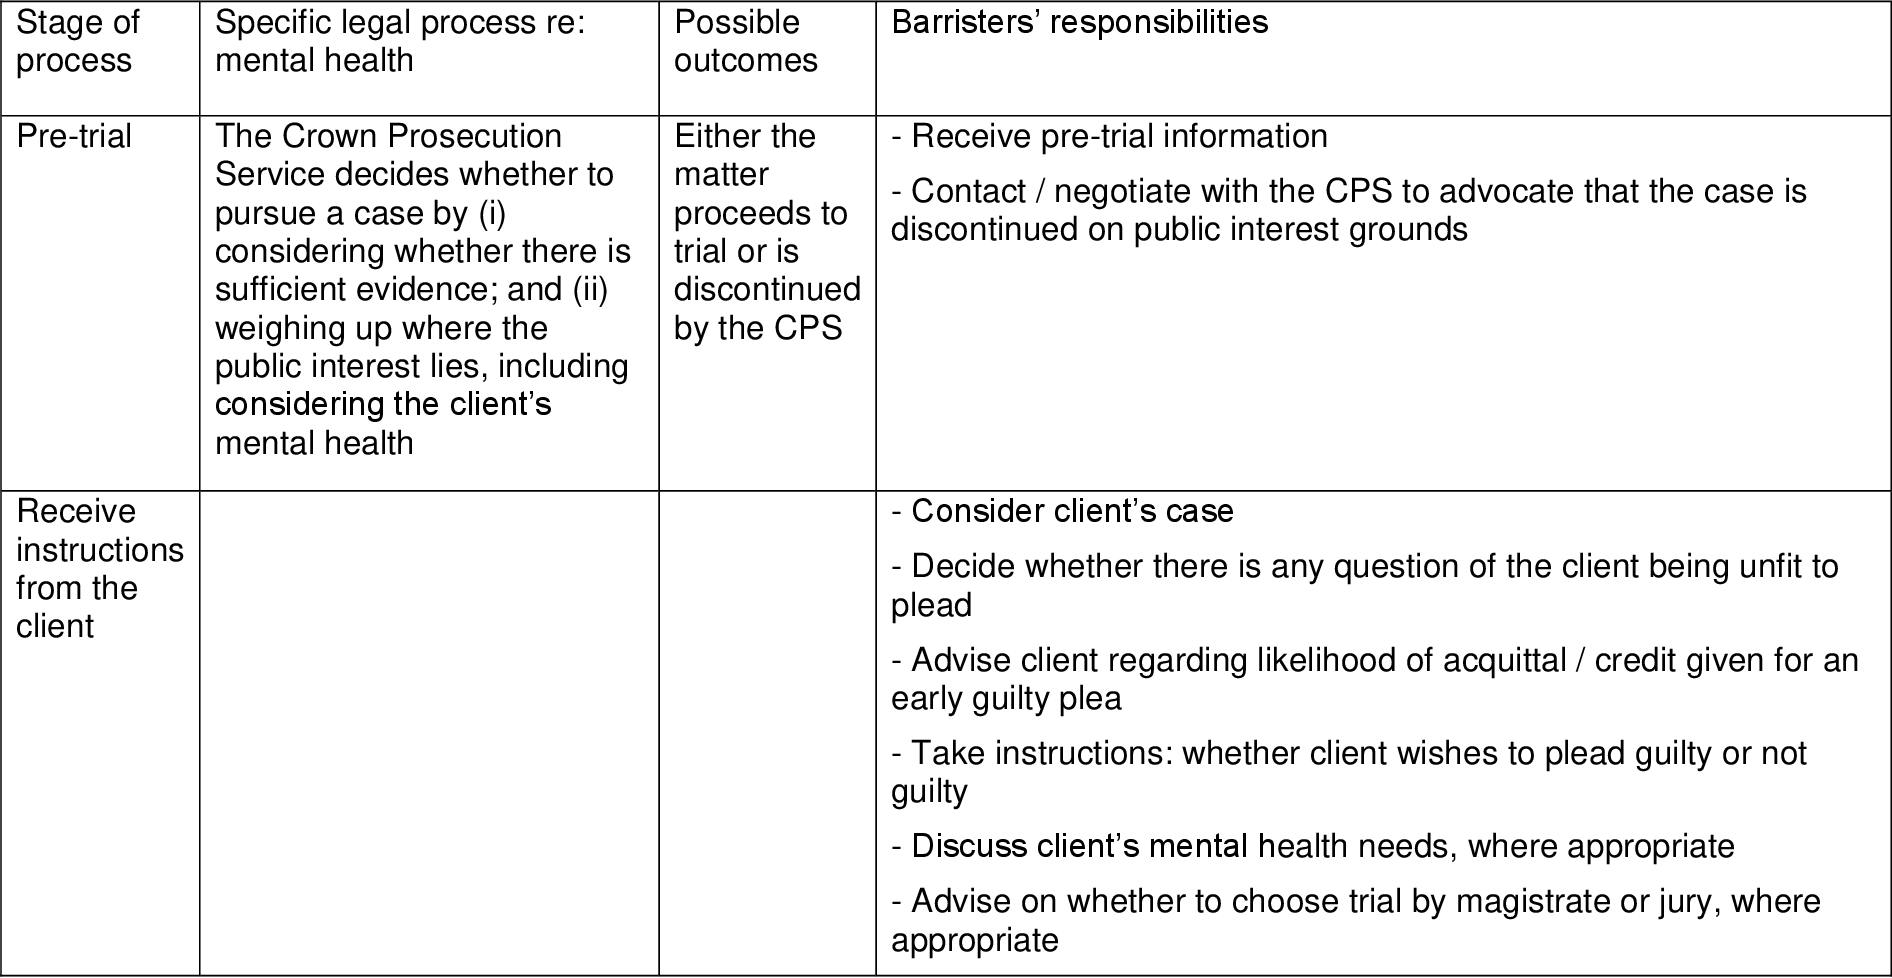 How do criminal defence barristers work with psychological distress